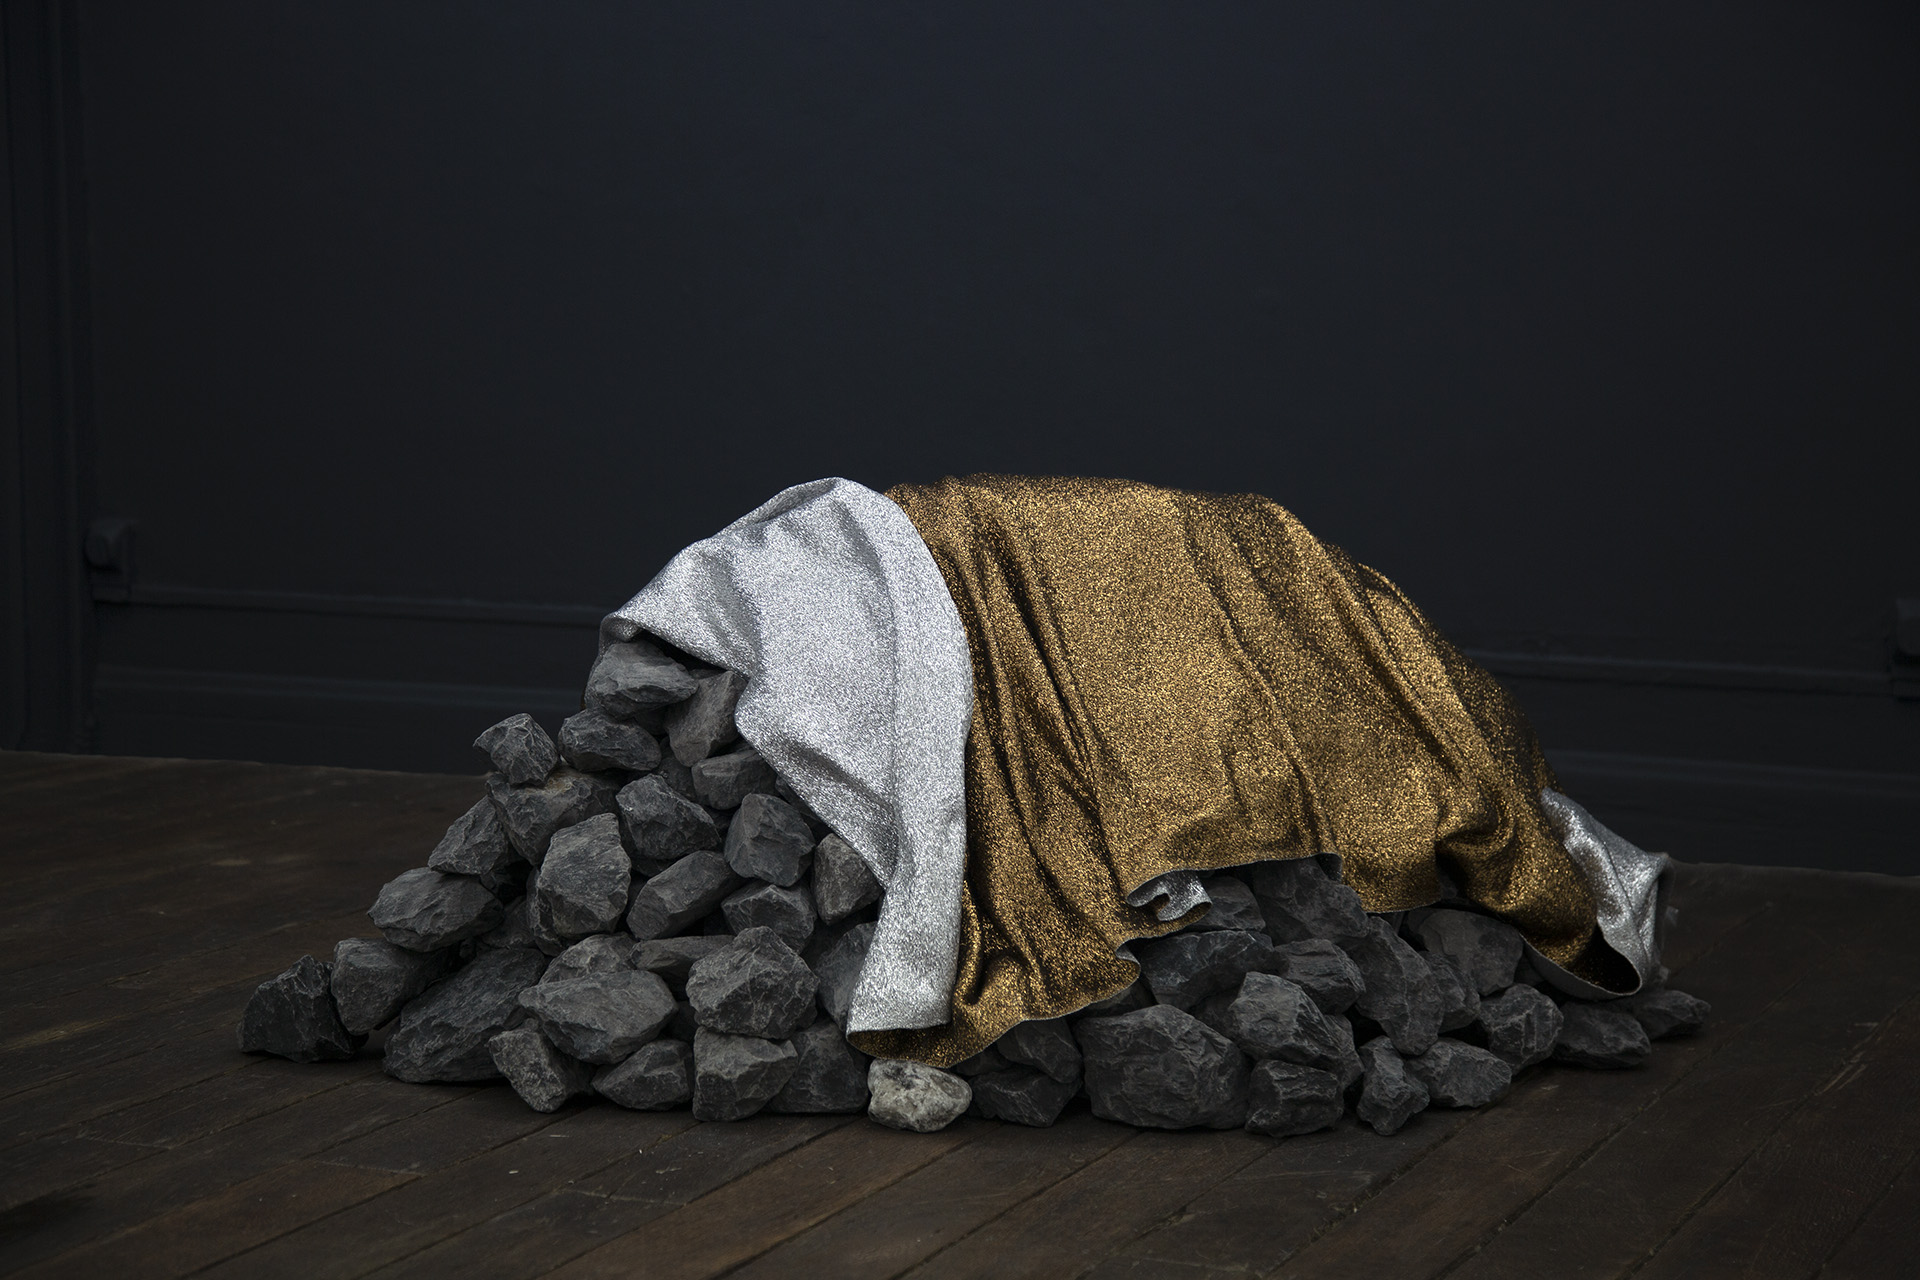 (emergency) (space) blanket for the moon   hand-woven bronze and silver mylar thread (satin weave), black limestone 32.5 x 21 x 60.5 in.   Galerie Octave Cowbell , Metz, France